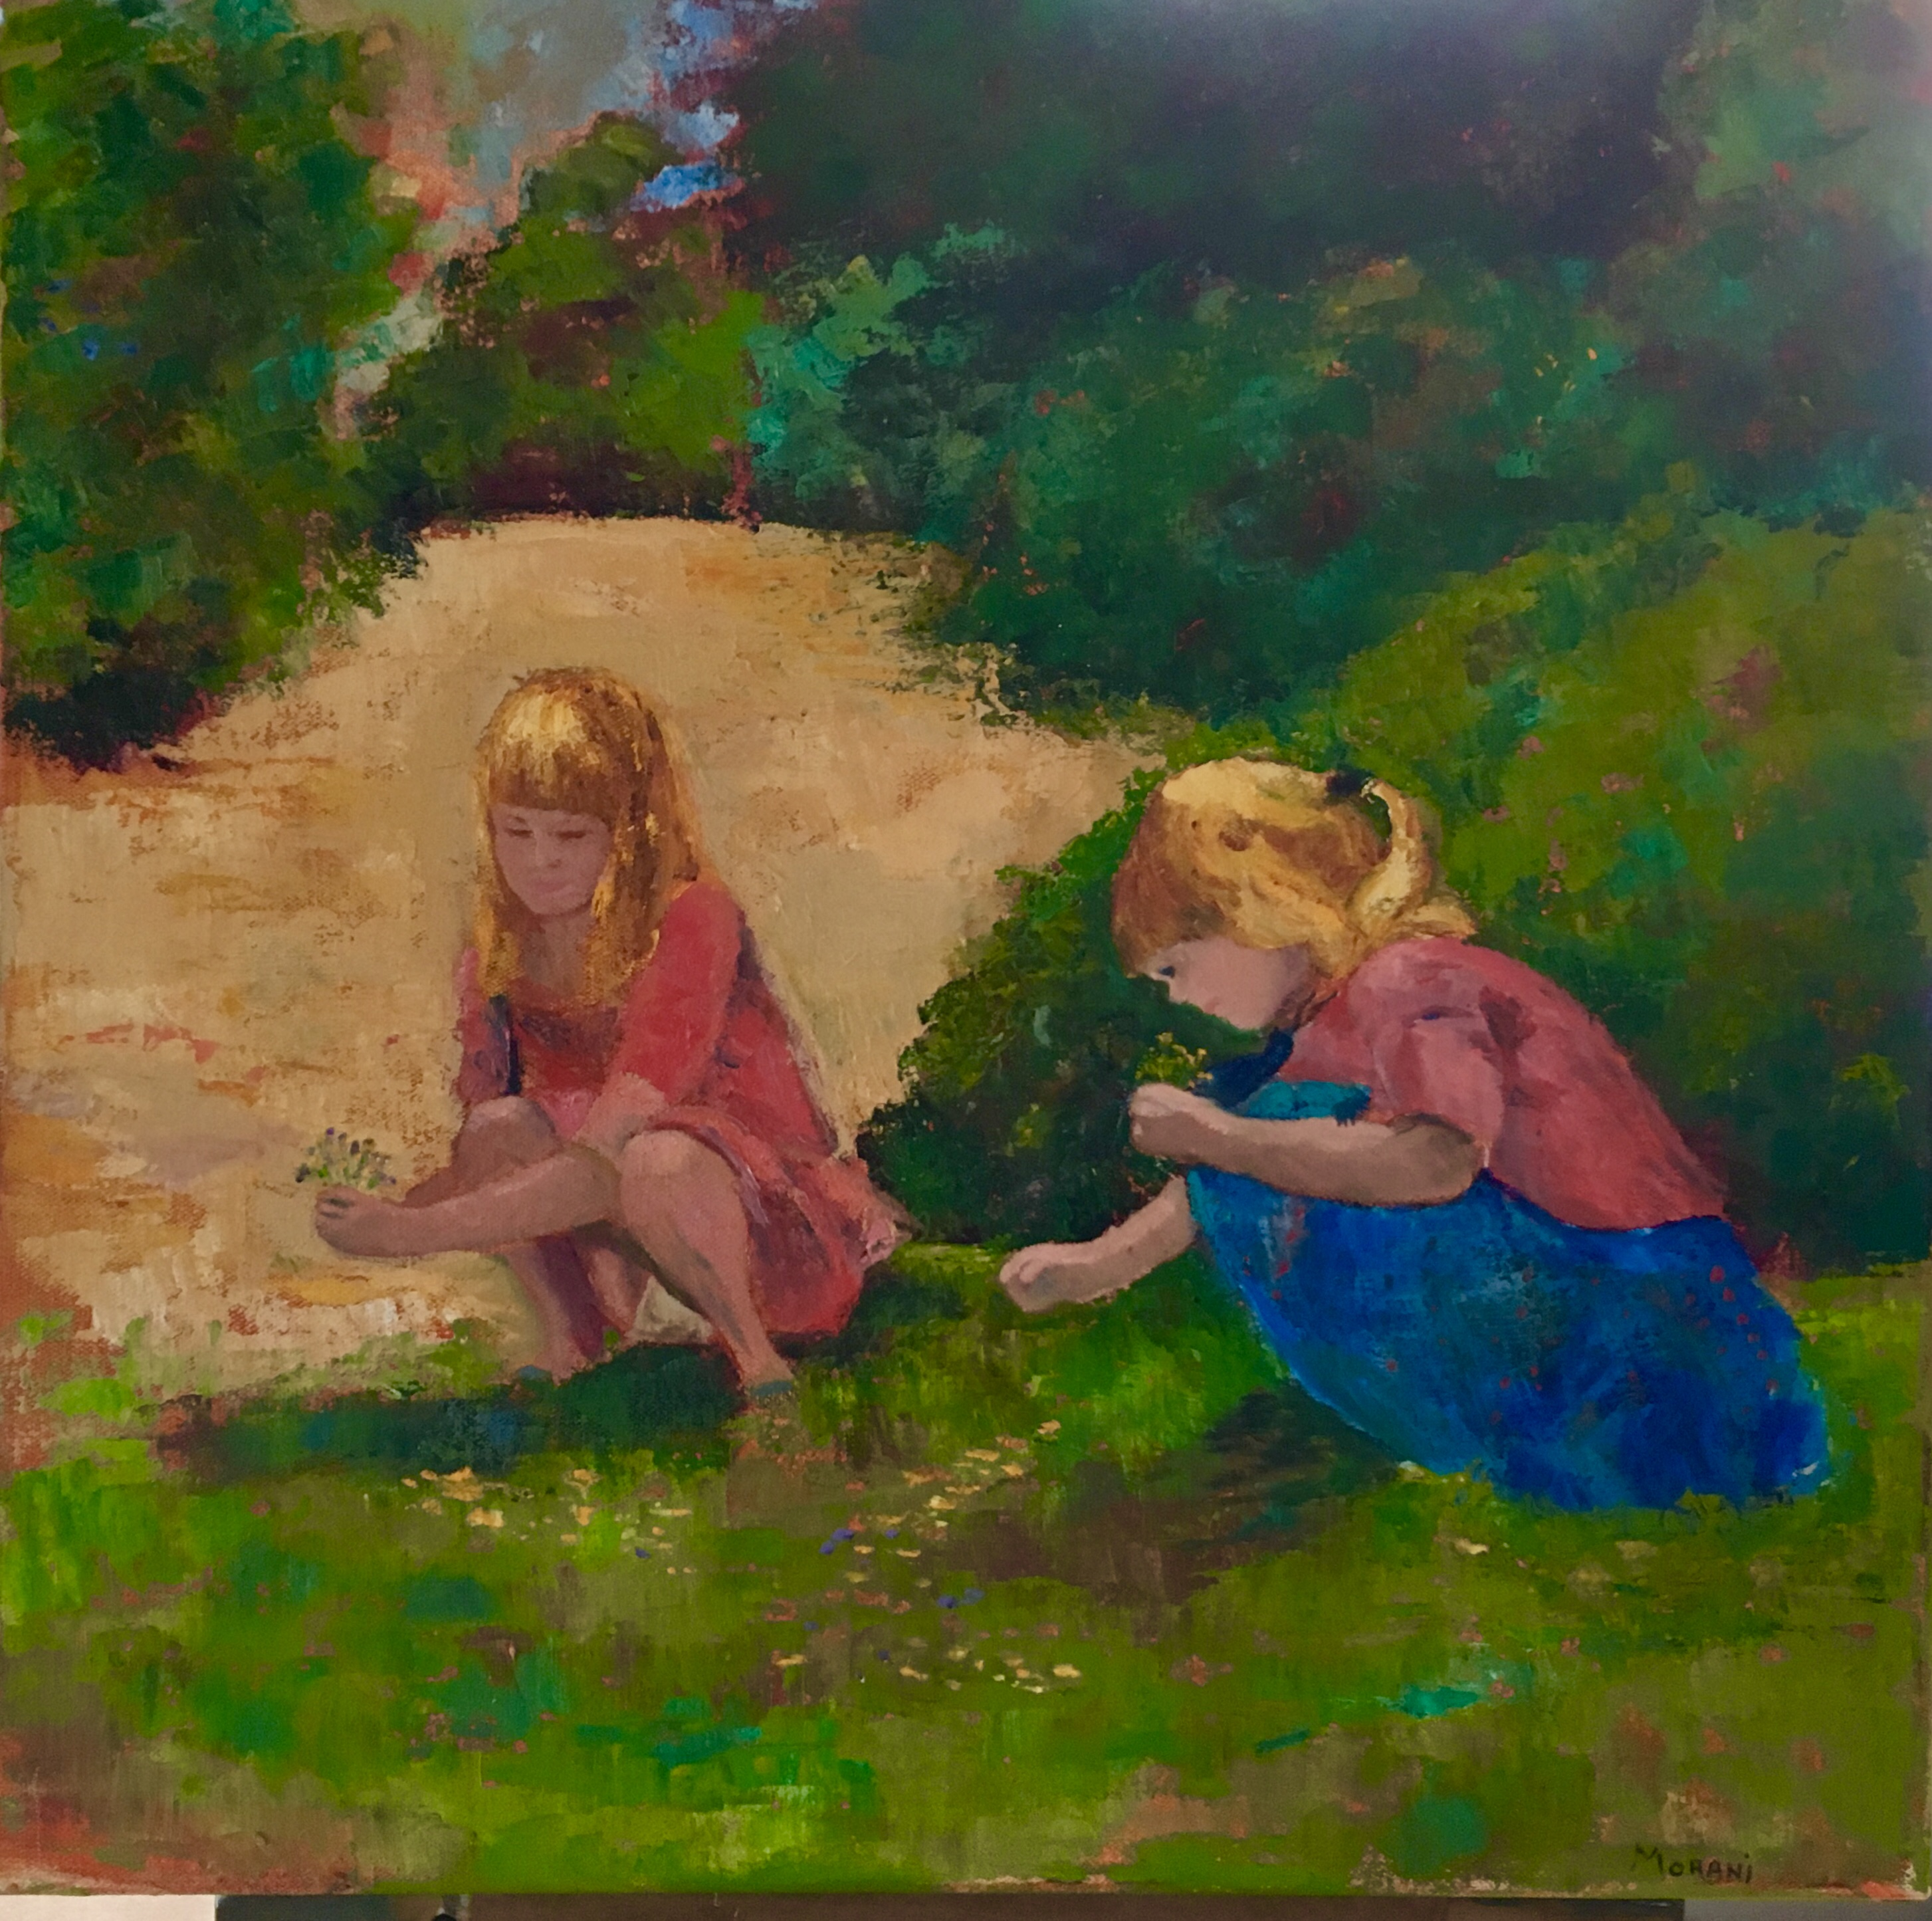 Painting of children picking flowers